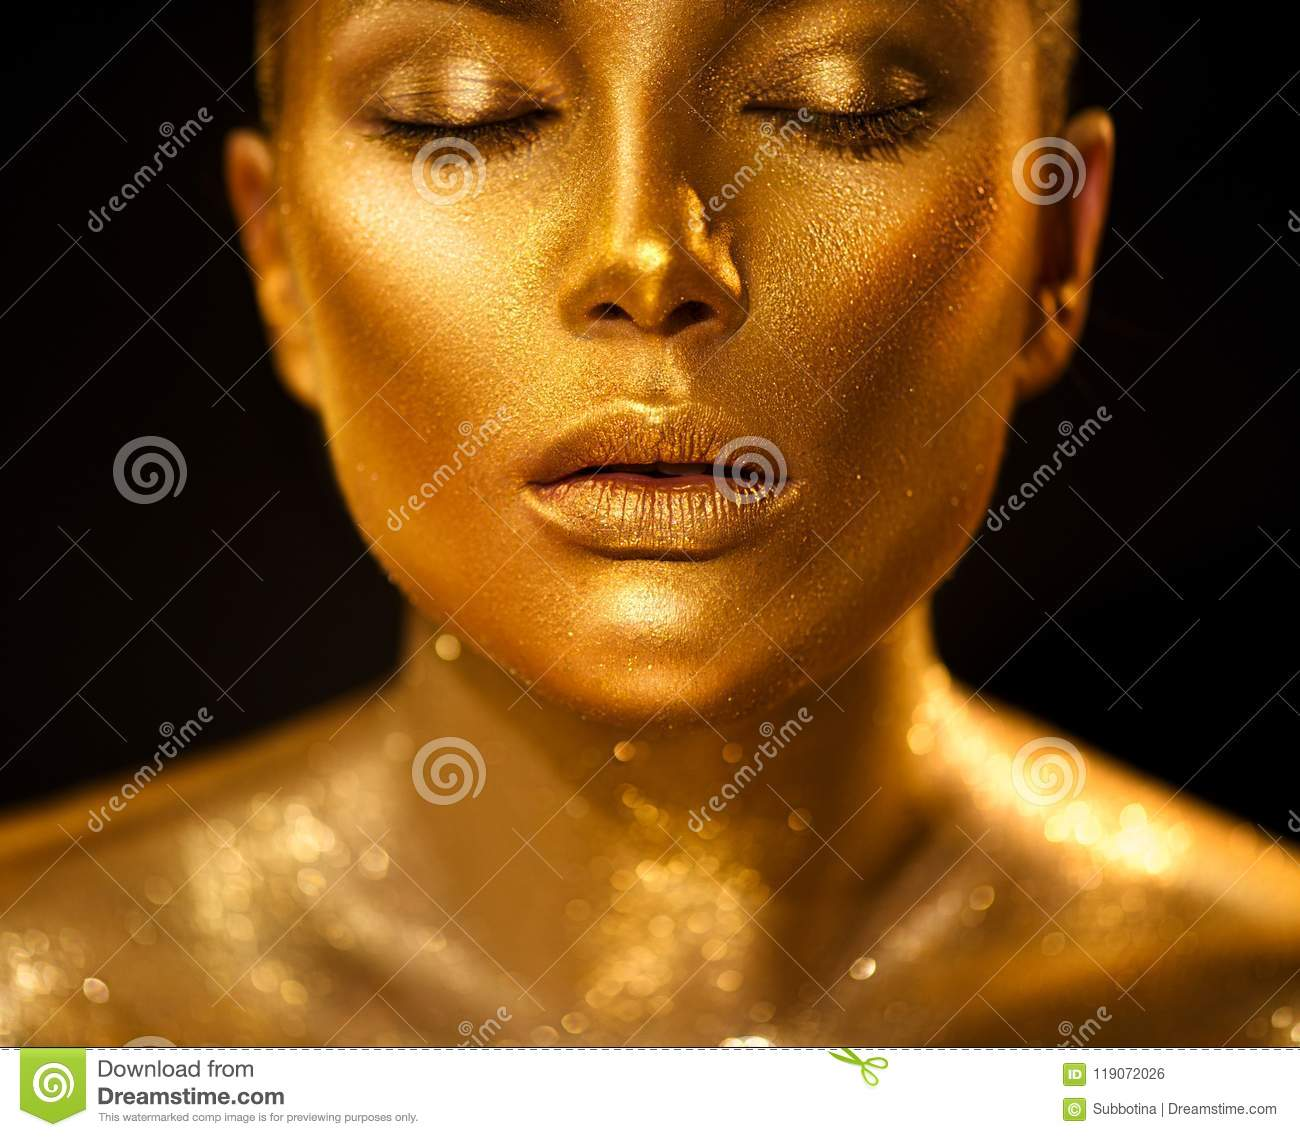 Golden skin woman face. Fashion art portrait closeup. Model girl with holiday golden glamour shiny professional makeup